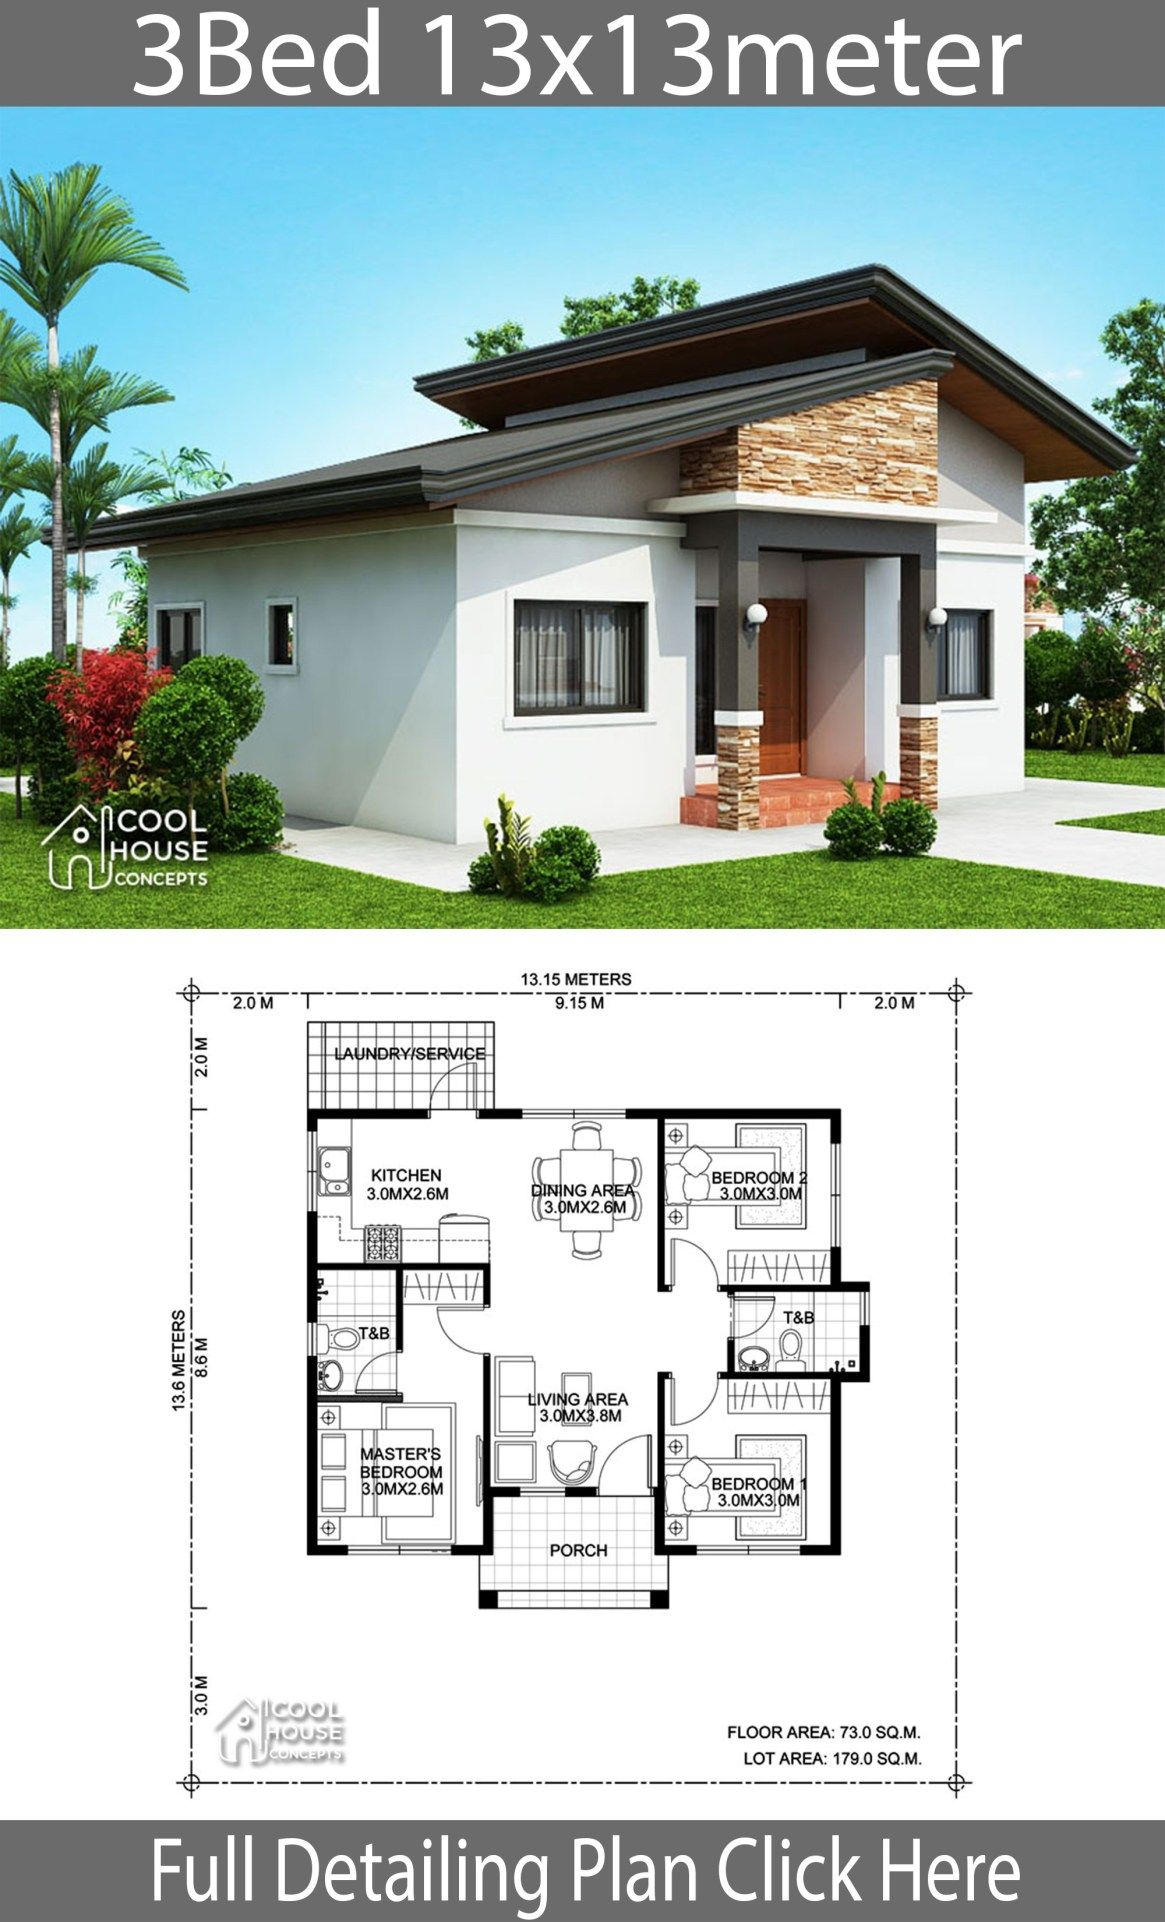 Home Design Plan 13x13m With 3 Bedrooms Home Design With Plansearch Cool House Designs Simple House Design Small House Design